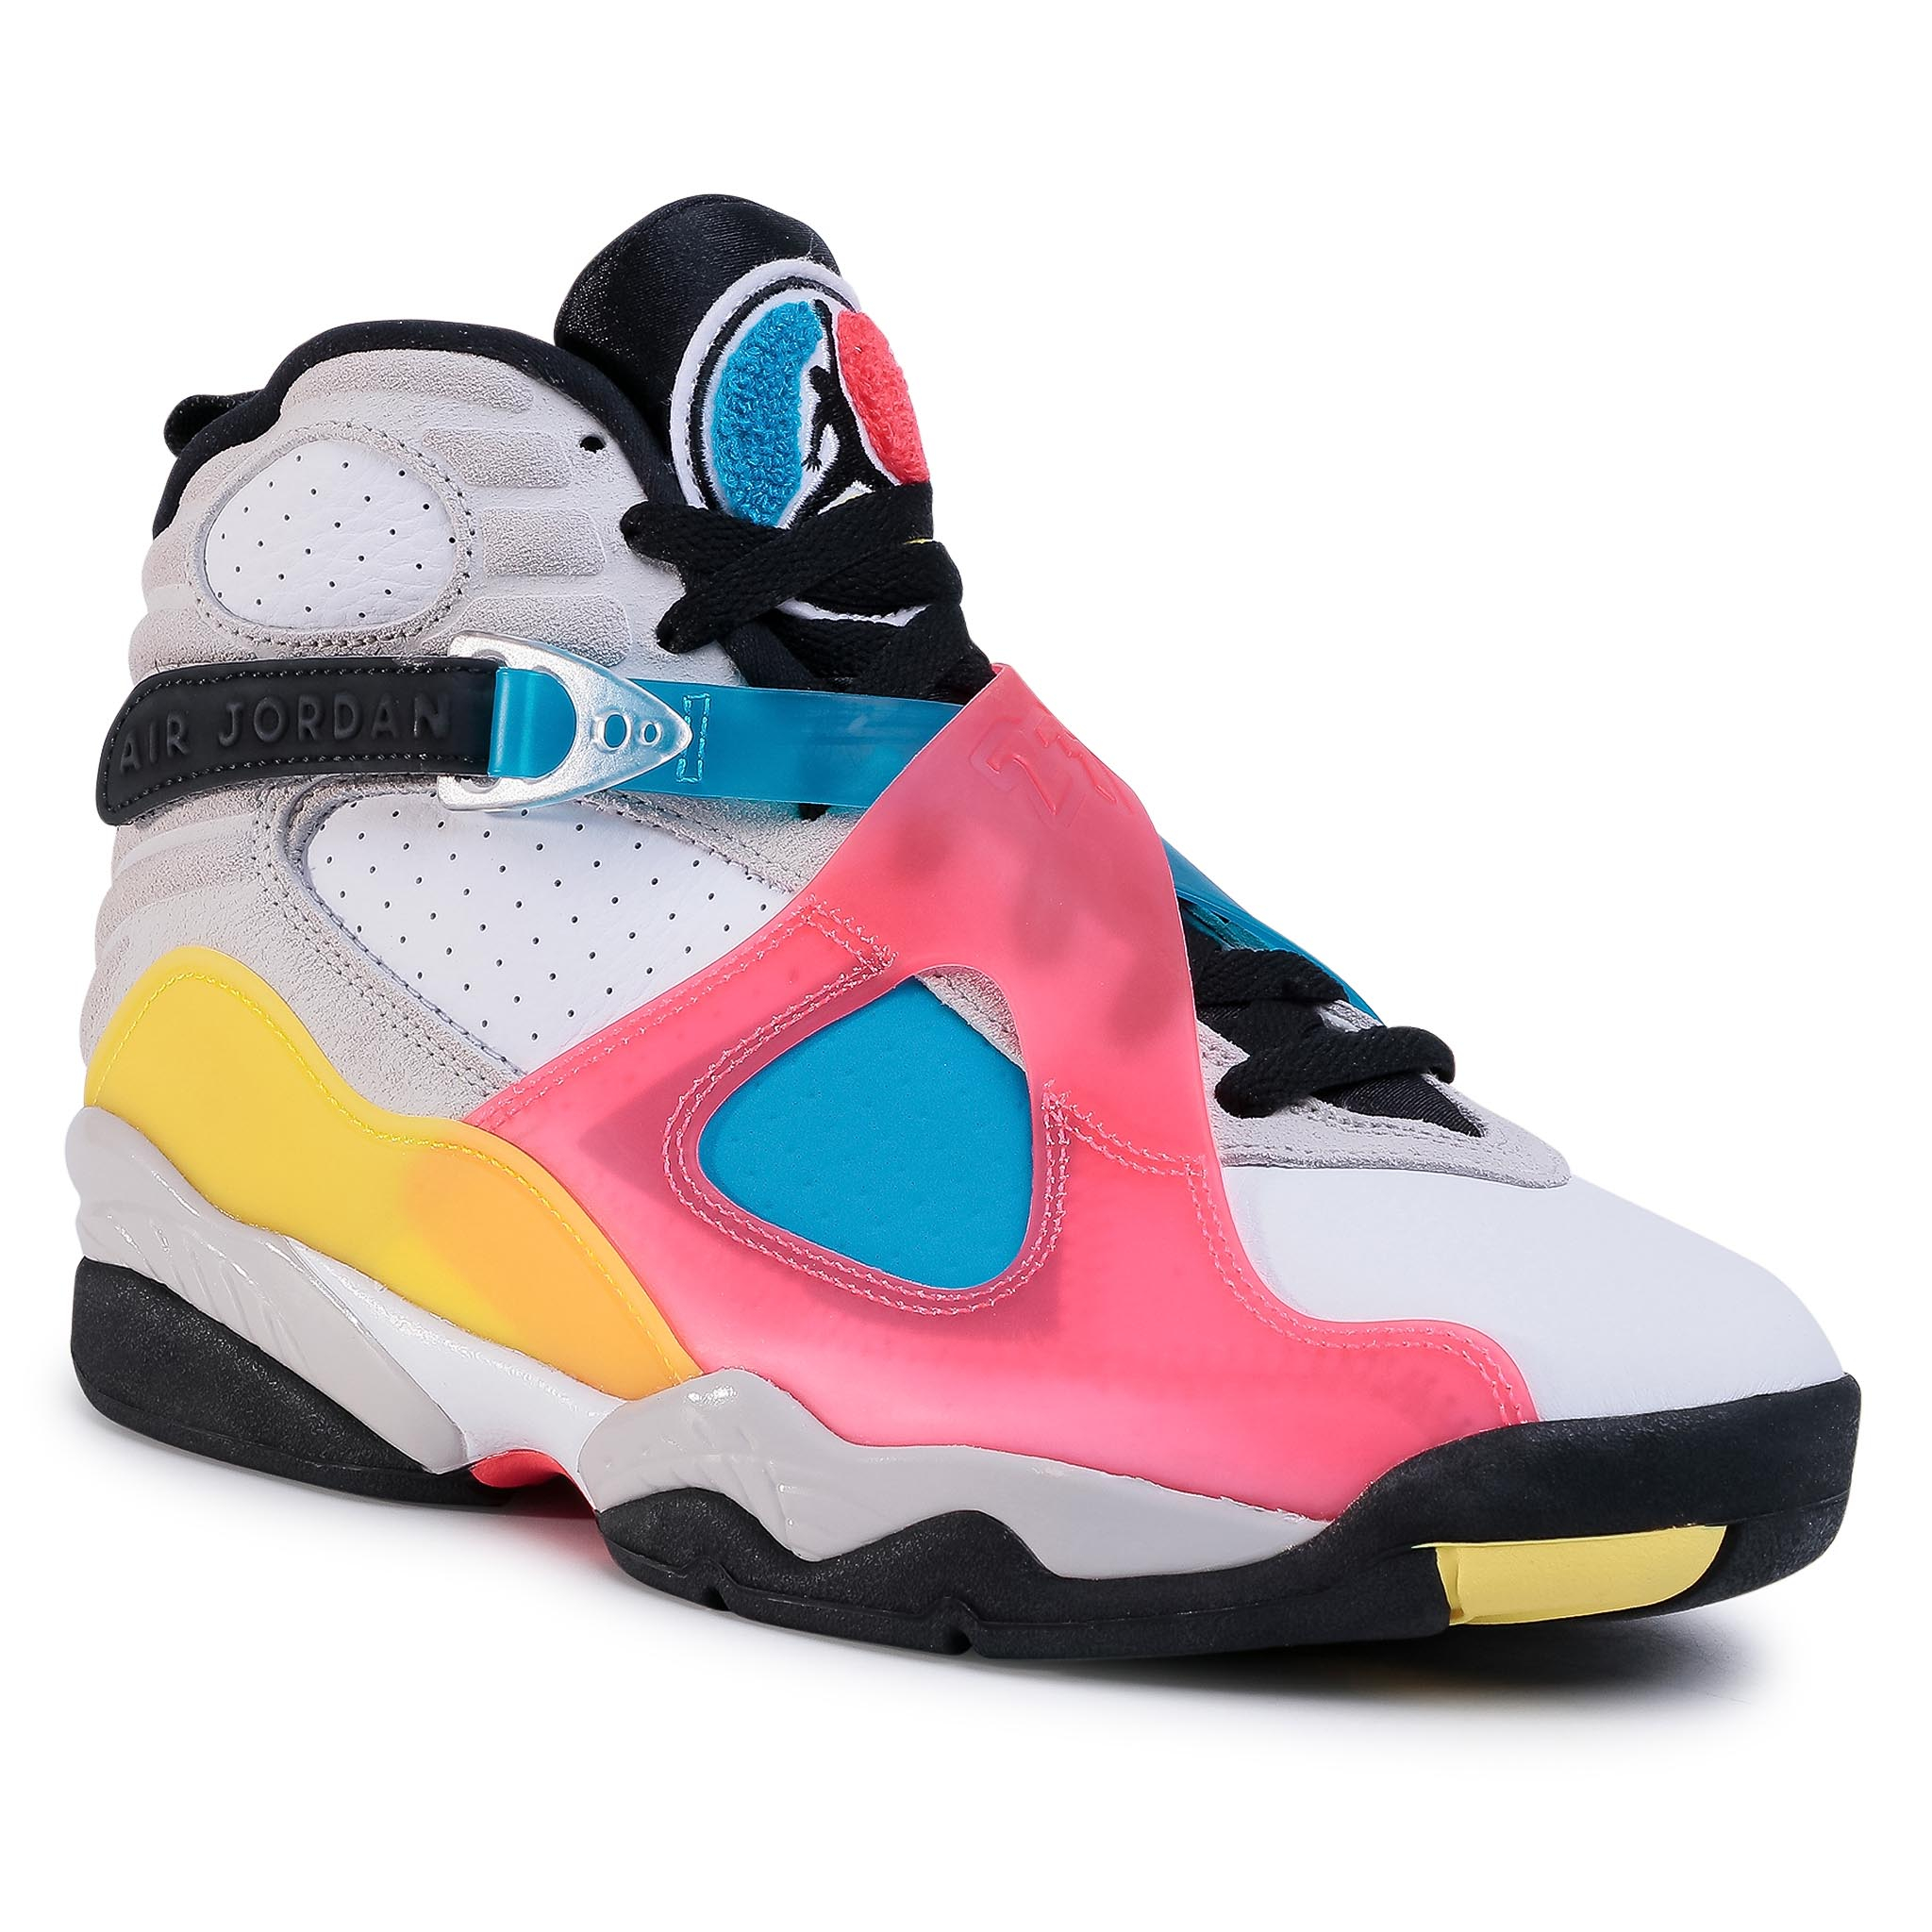 Pantofi Nike - Air Jordan 8 Retro Se Bq7666 100 White/Black/Red Orbit imagine epantofi.ro 2021